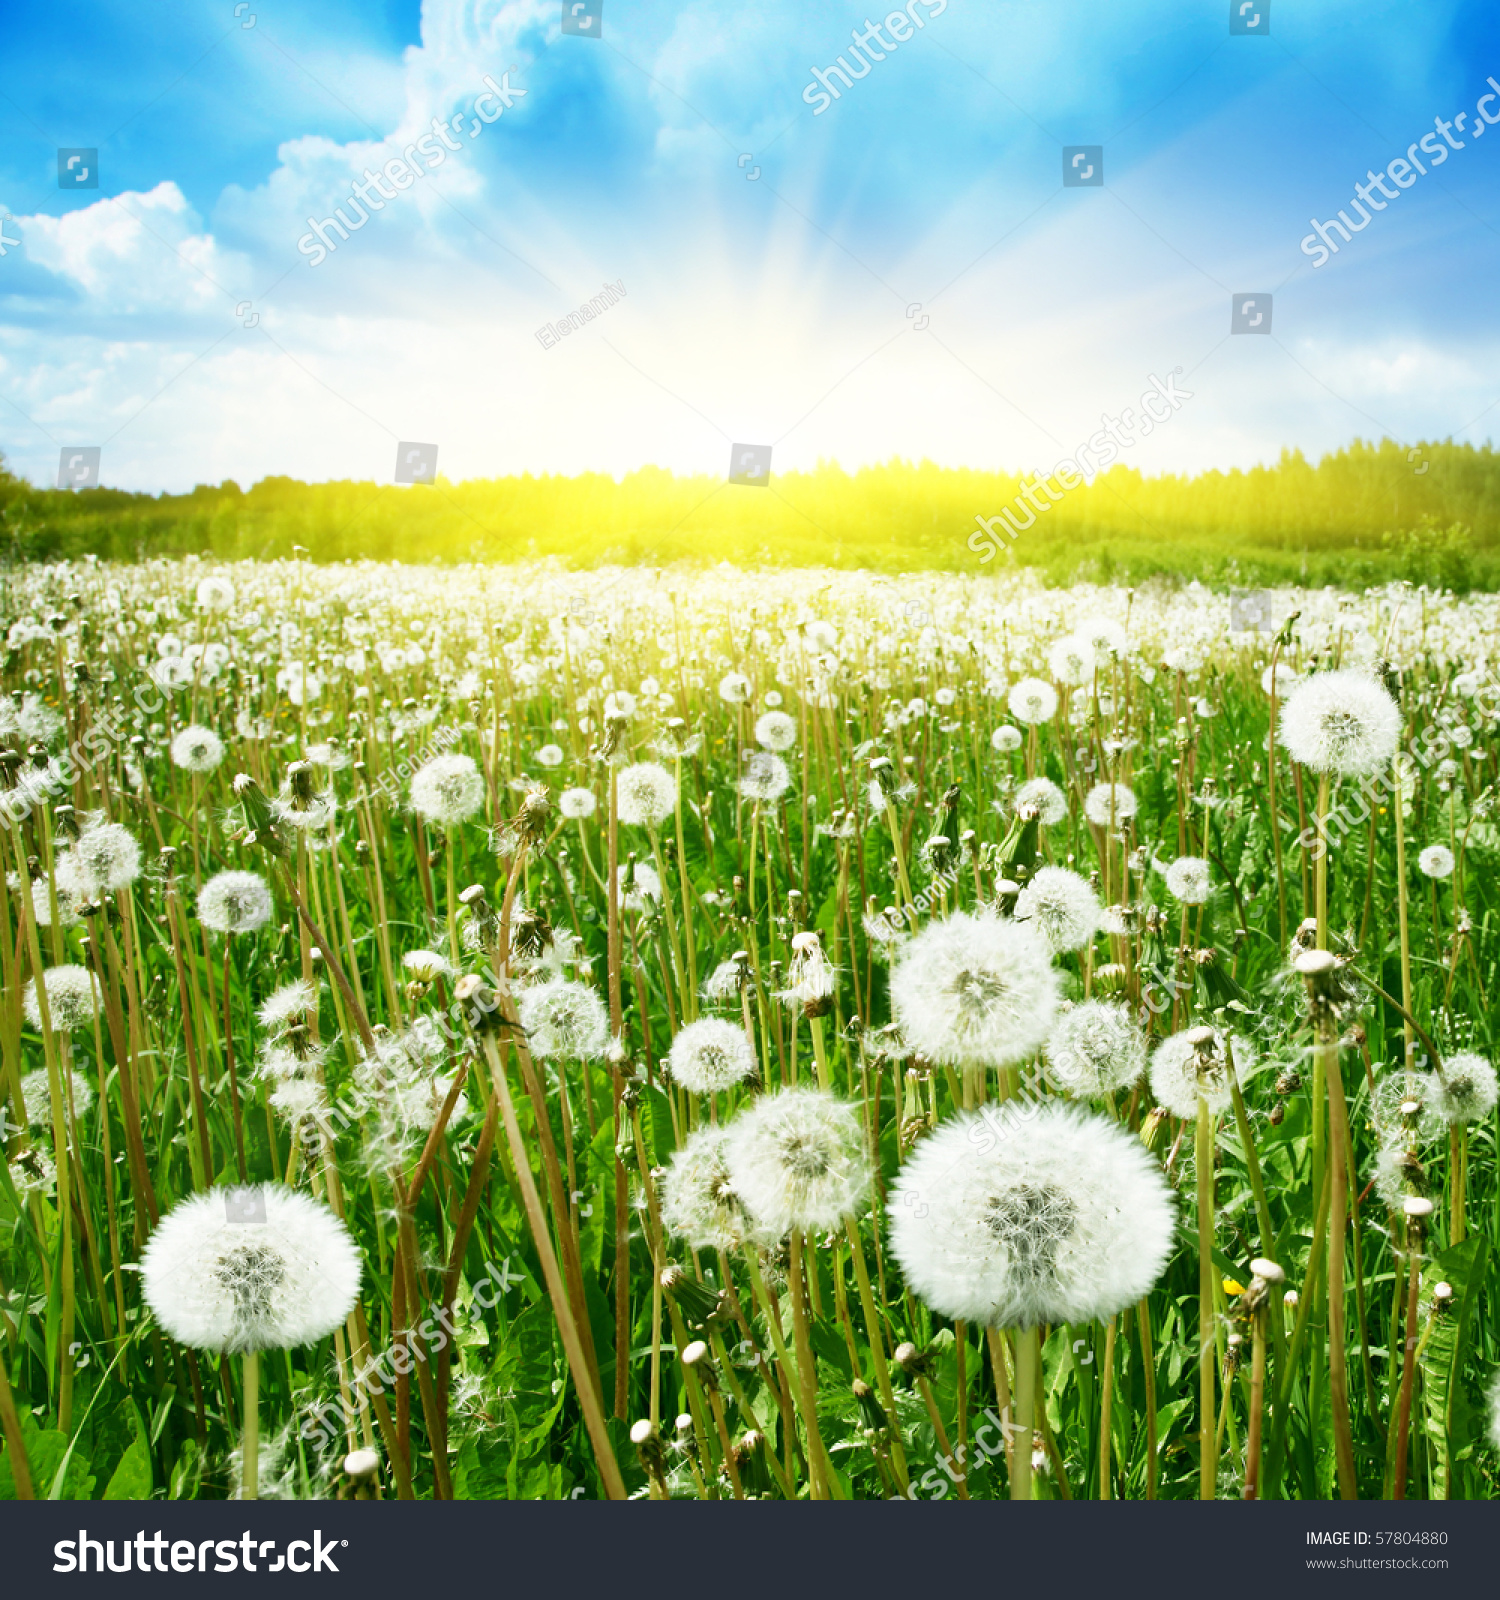 Field Of Dandelions,Blue Sky And Sun. Stock Photo 57804880